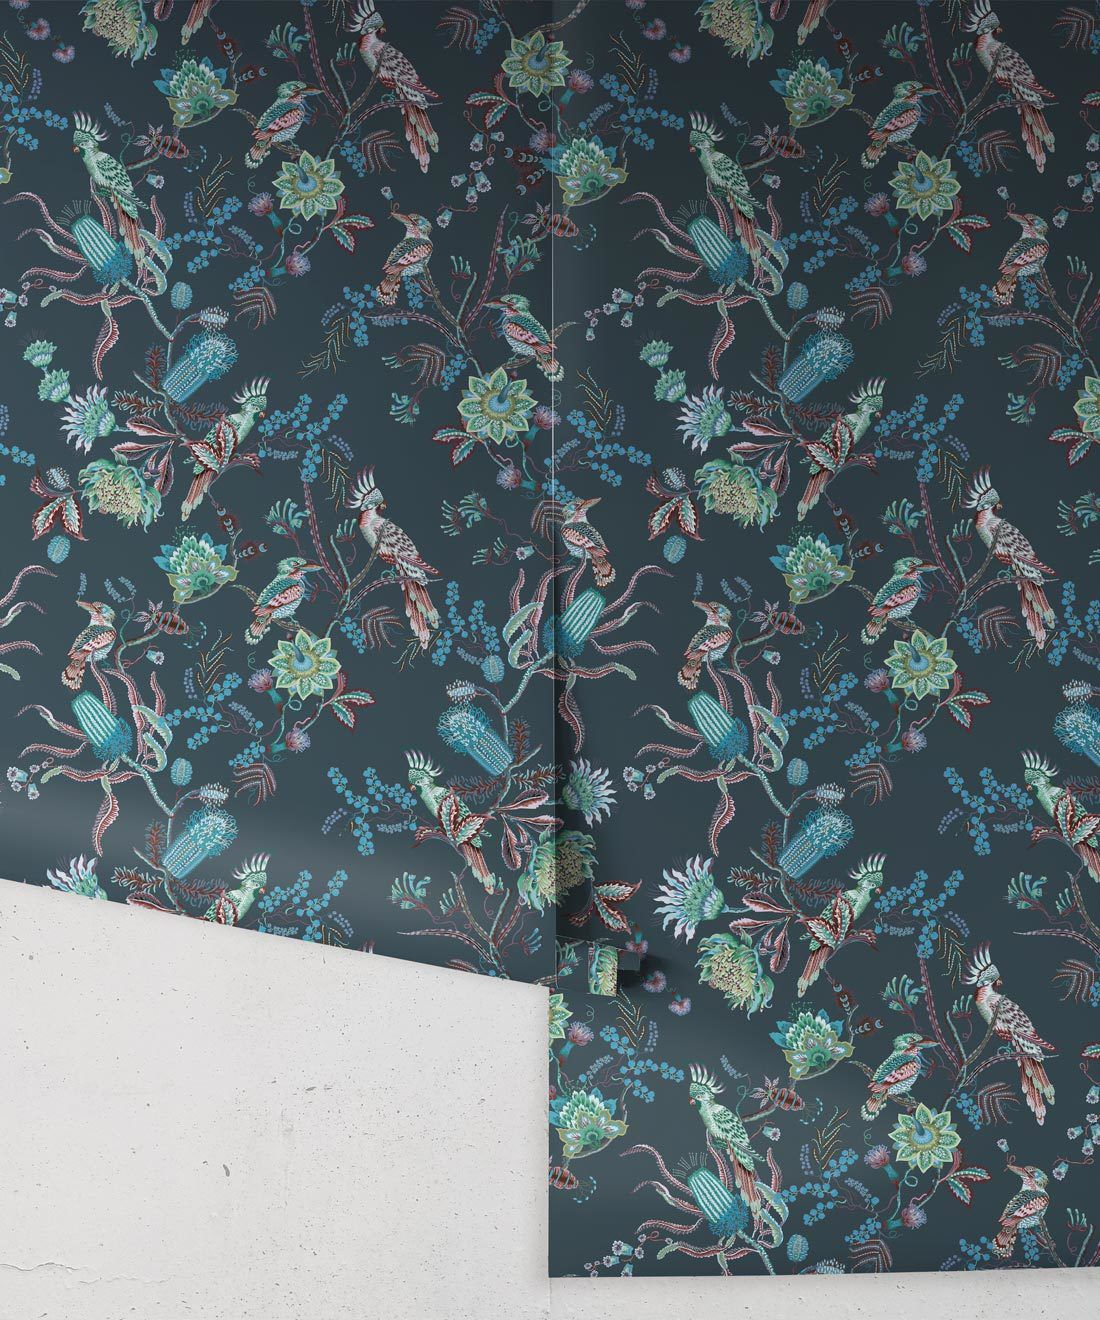 Matilda Wallpaper • Cockatoo, kookaburra • Australian Wallpaper • Milton & King USA • Deep Blue Roll